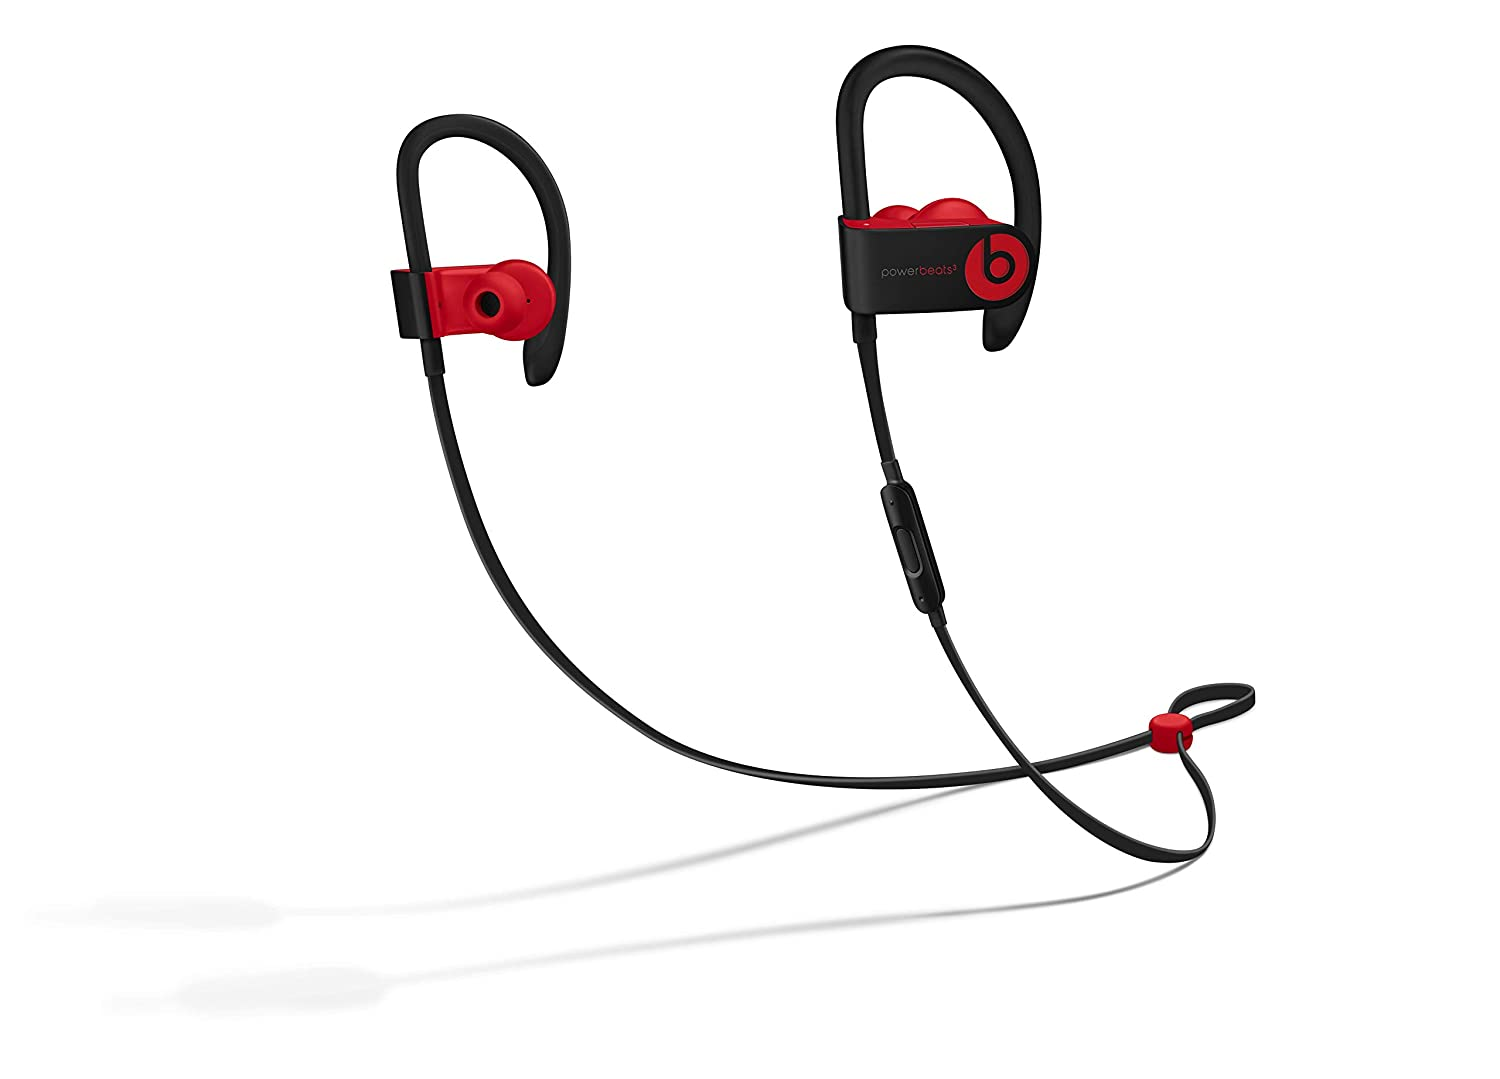 Powerbeats3 Wireless In-Ear Headphone – The Beats Decade Collection